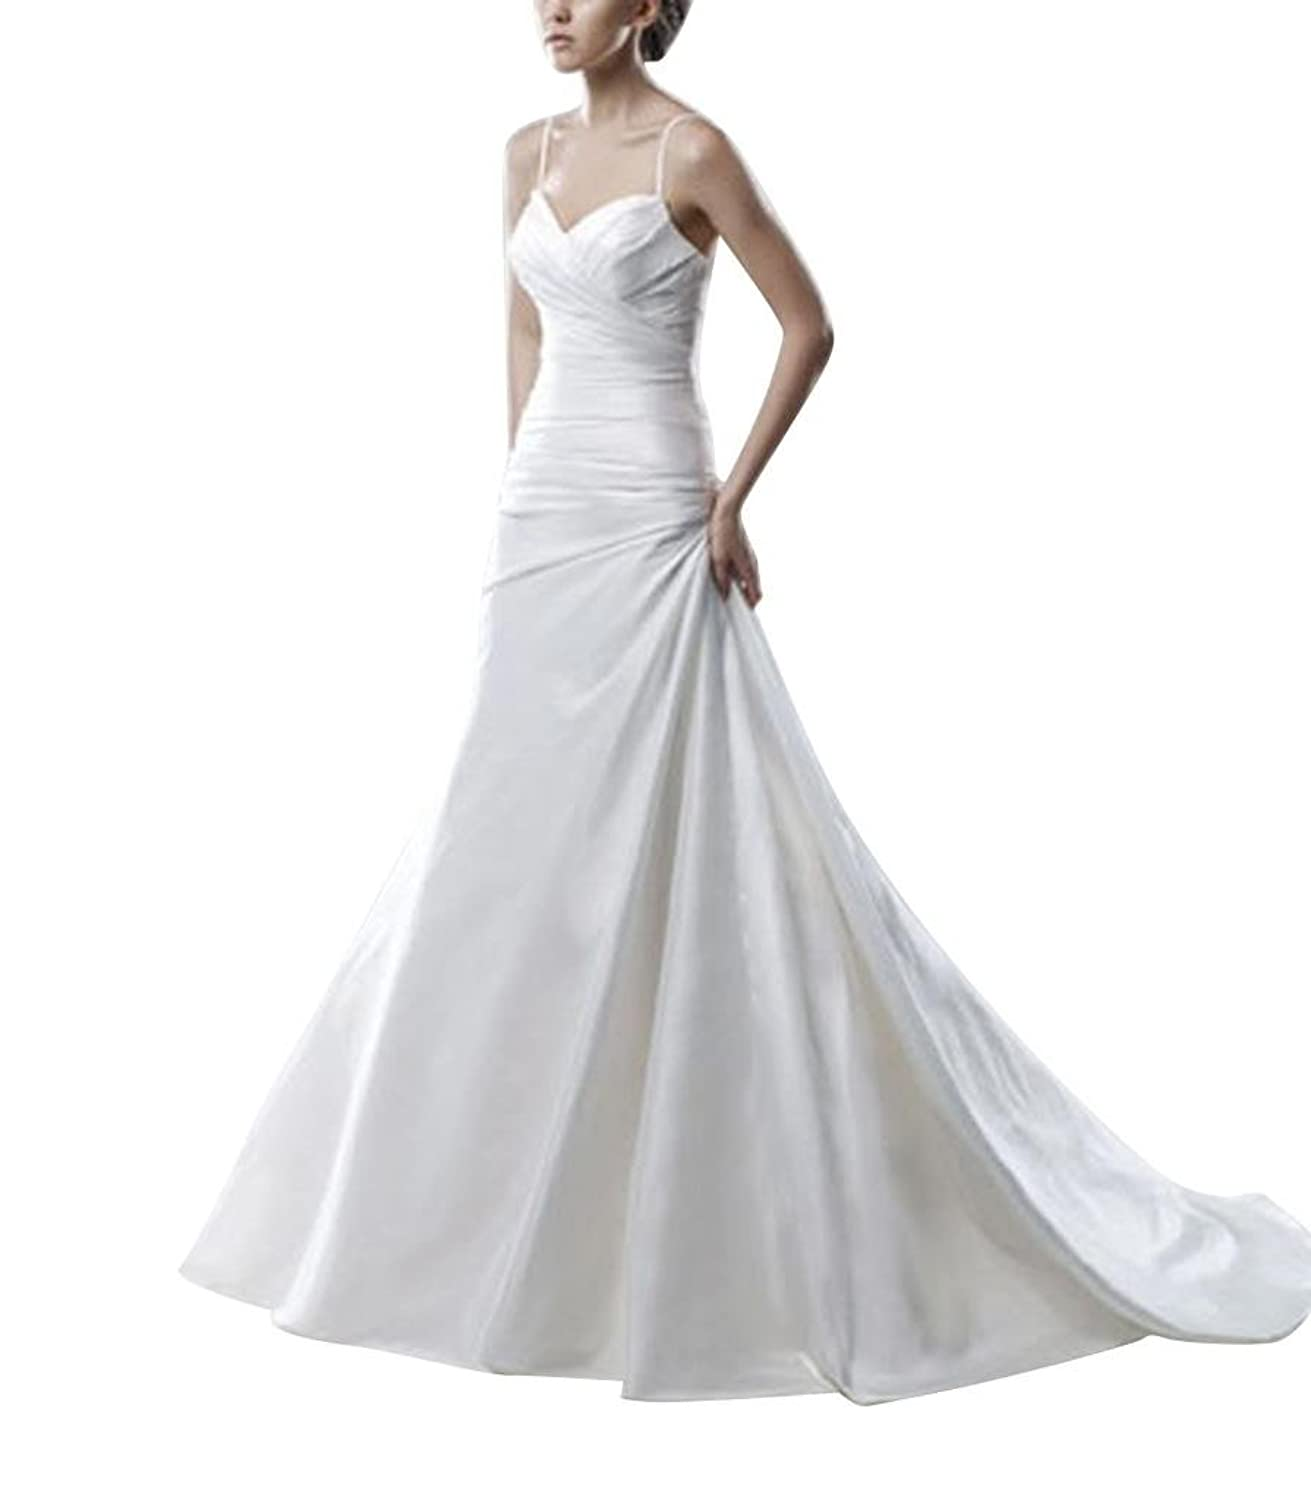 GEORGE BRIDE Simple Spaghetti Strap Sweetheart Neckline With Low Back Wedding Dress